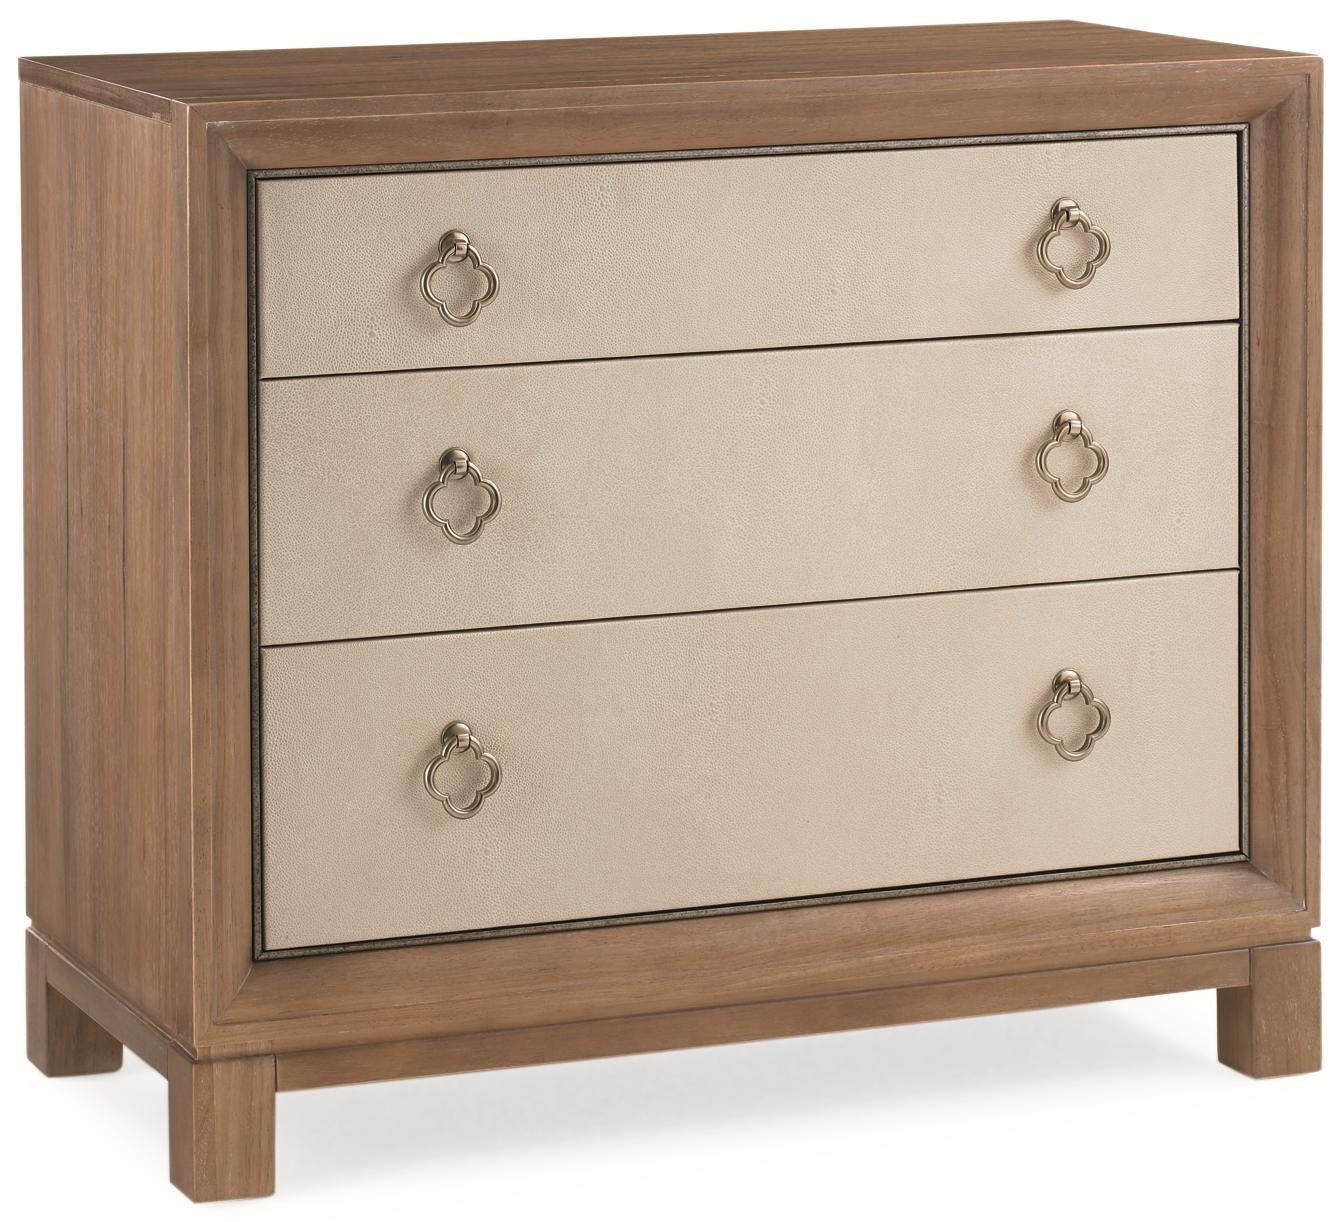 """Caracole Classic """"Glam-More"""" & """"Much to My Shagreen"""" Nightsta by Caracole at Baer's Furniture"""